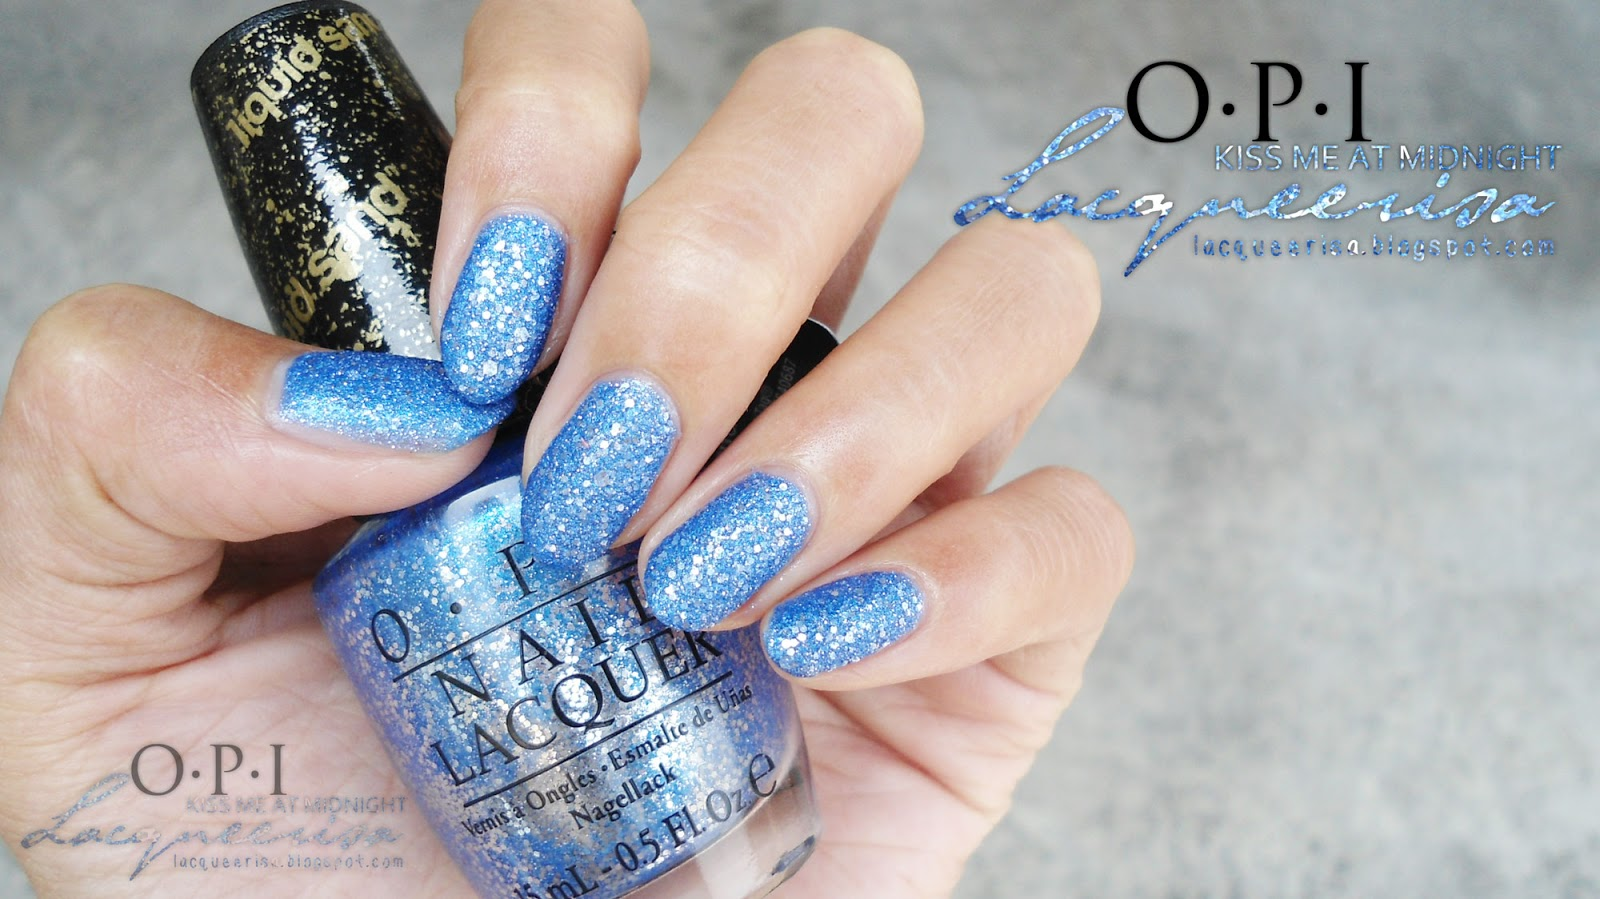 Lacqueerisa: OPI Kiss Me At Midnight